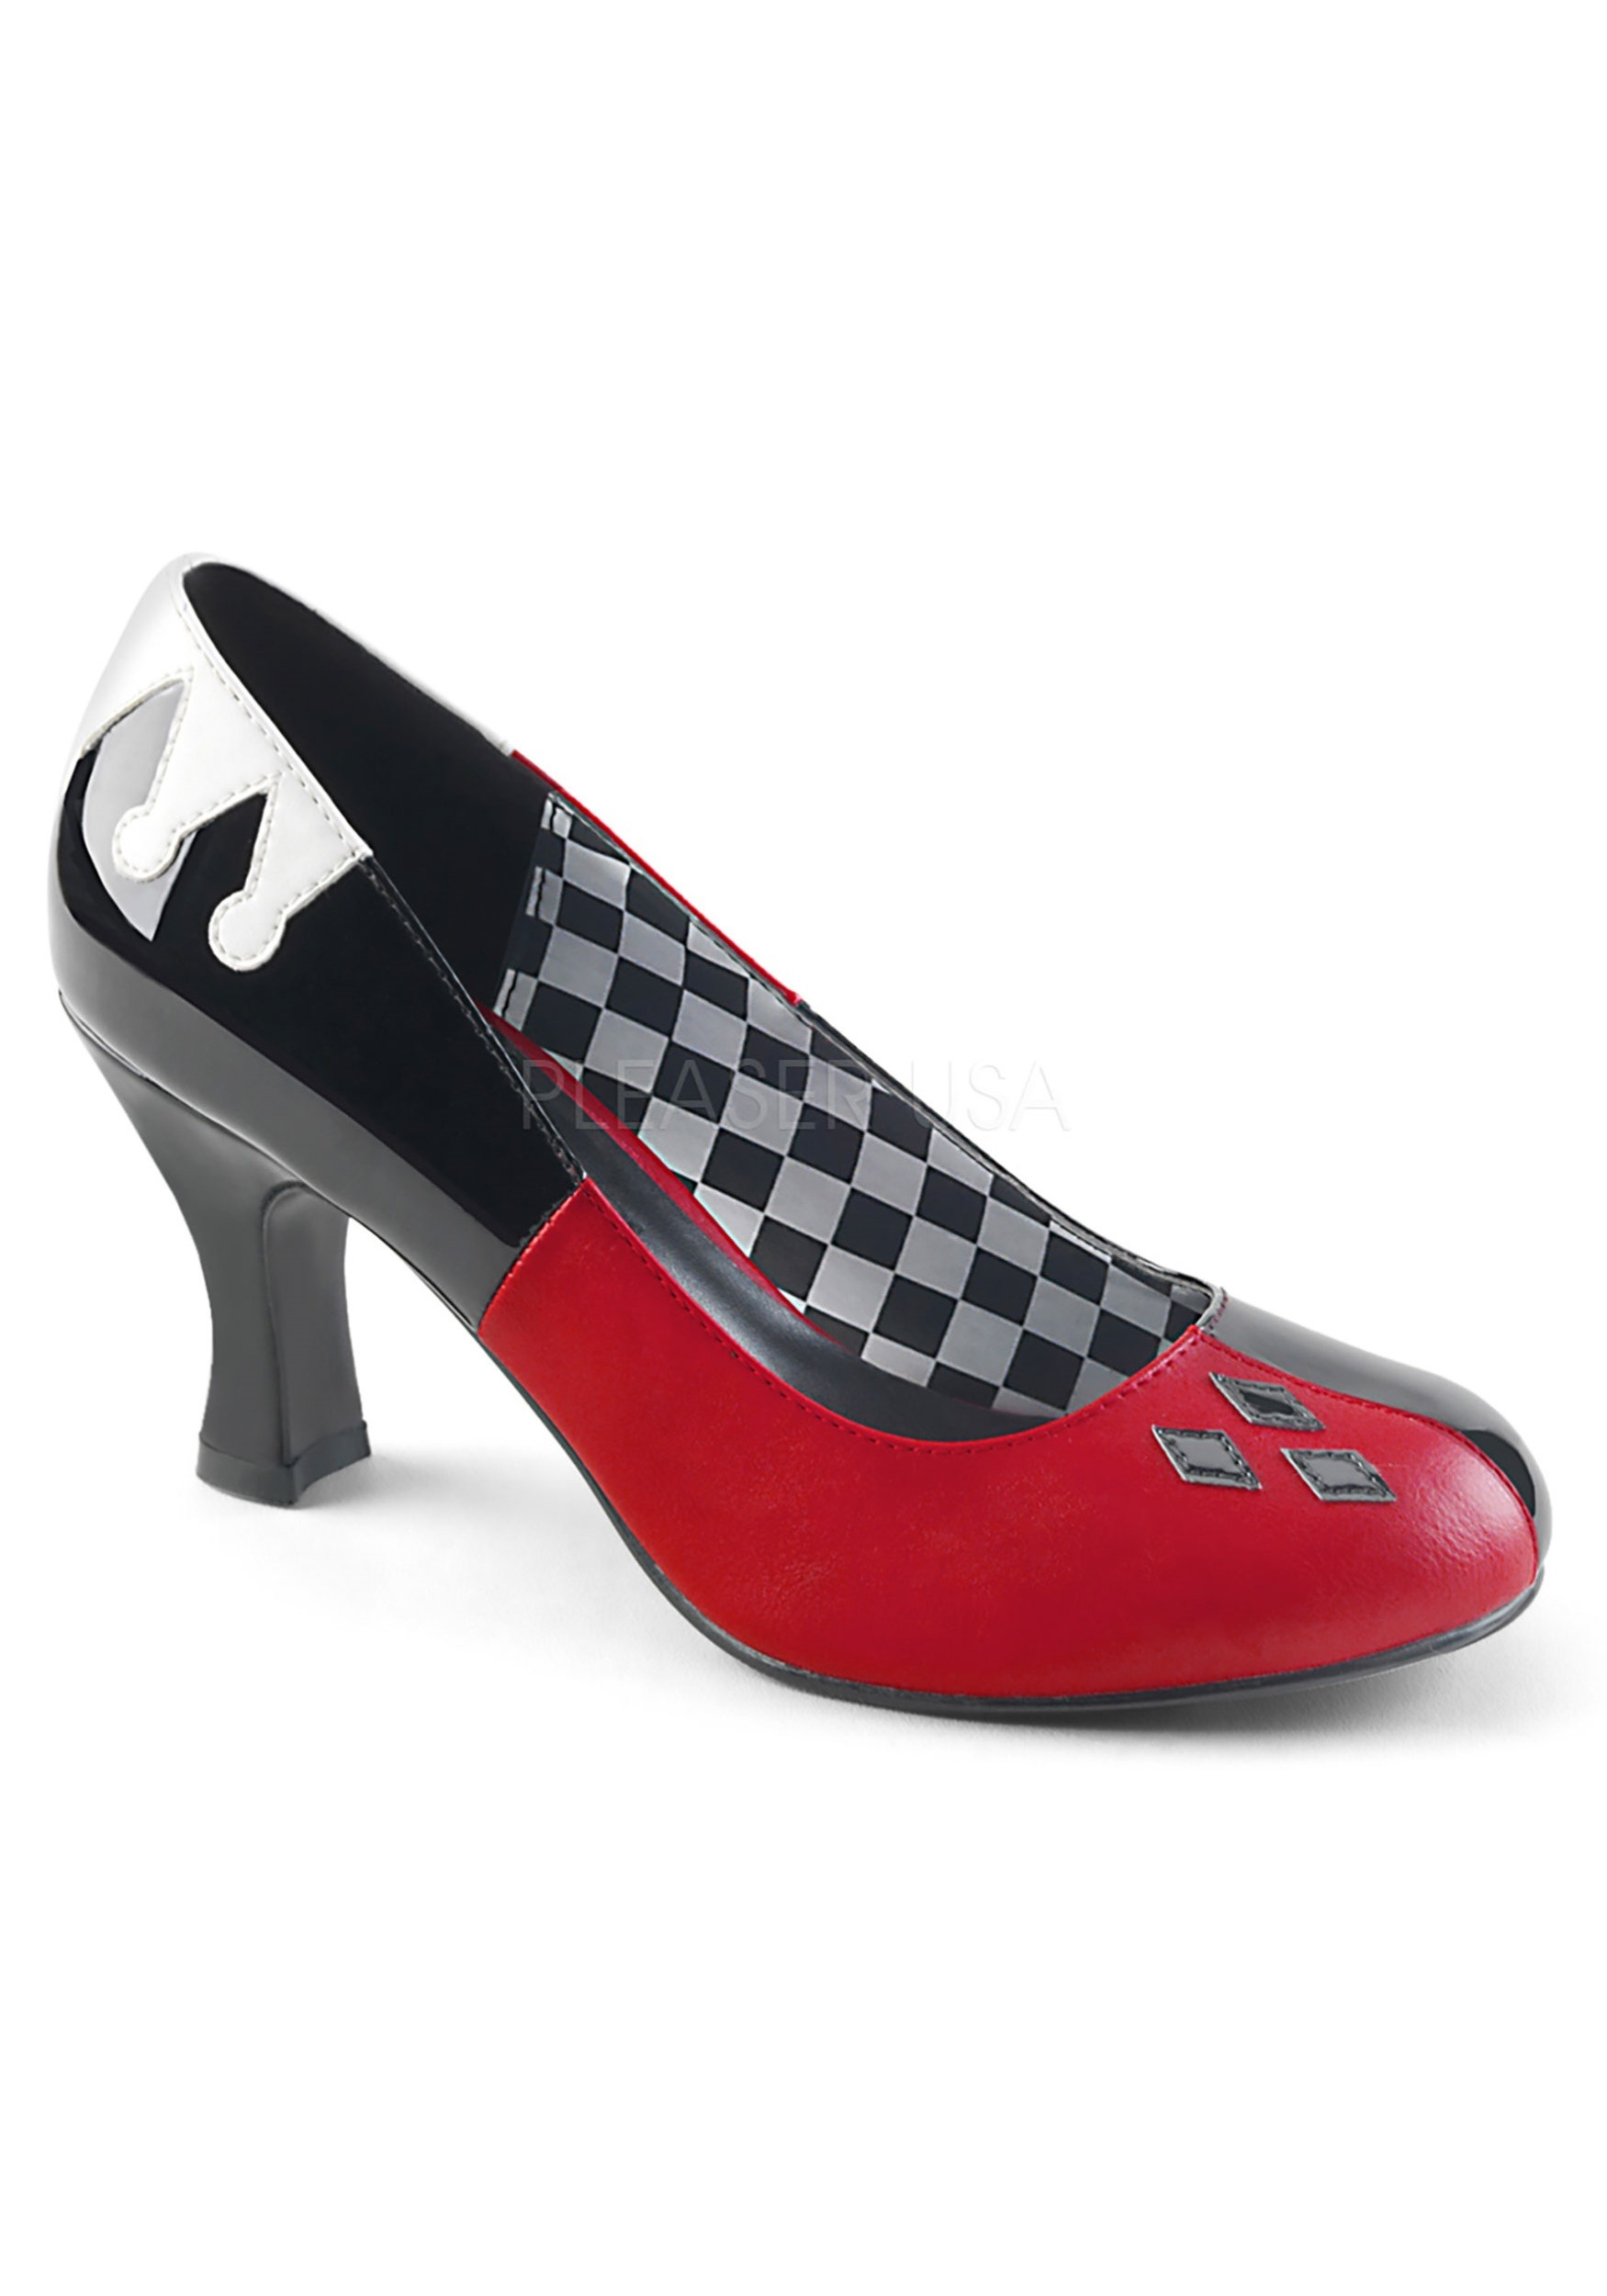 Harley Women's Shoes